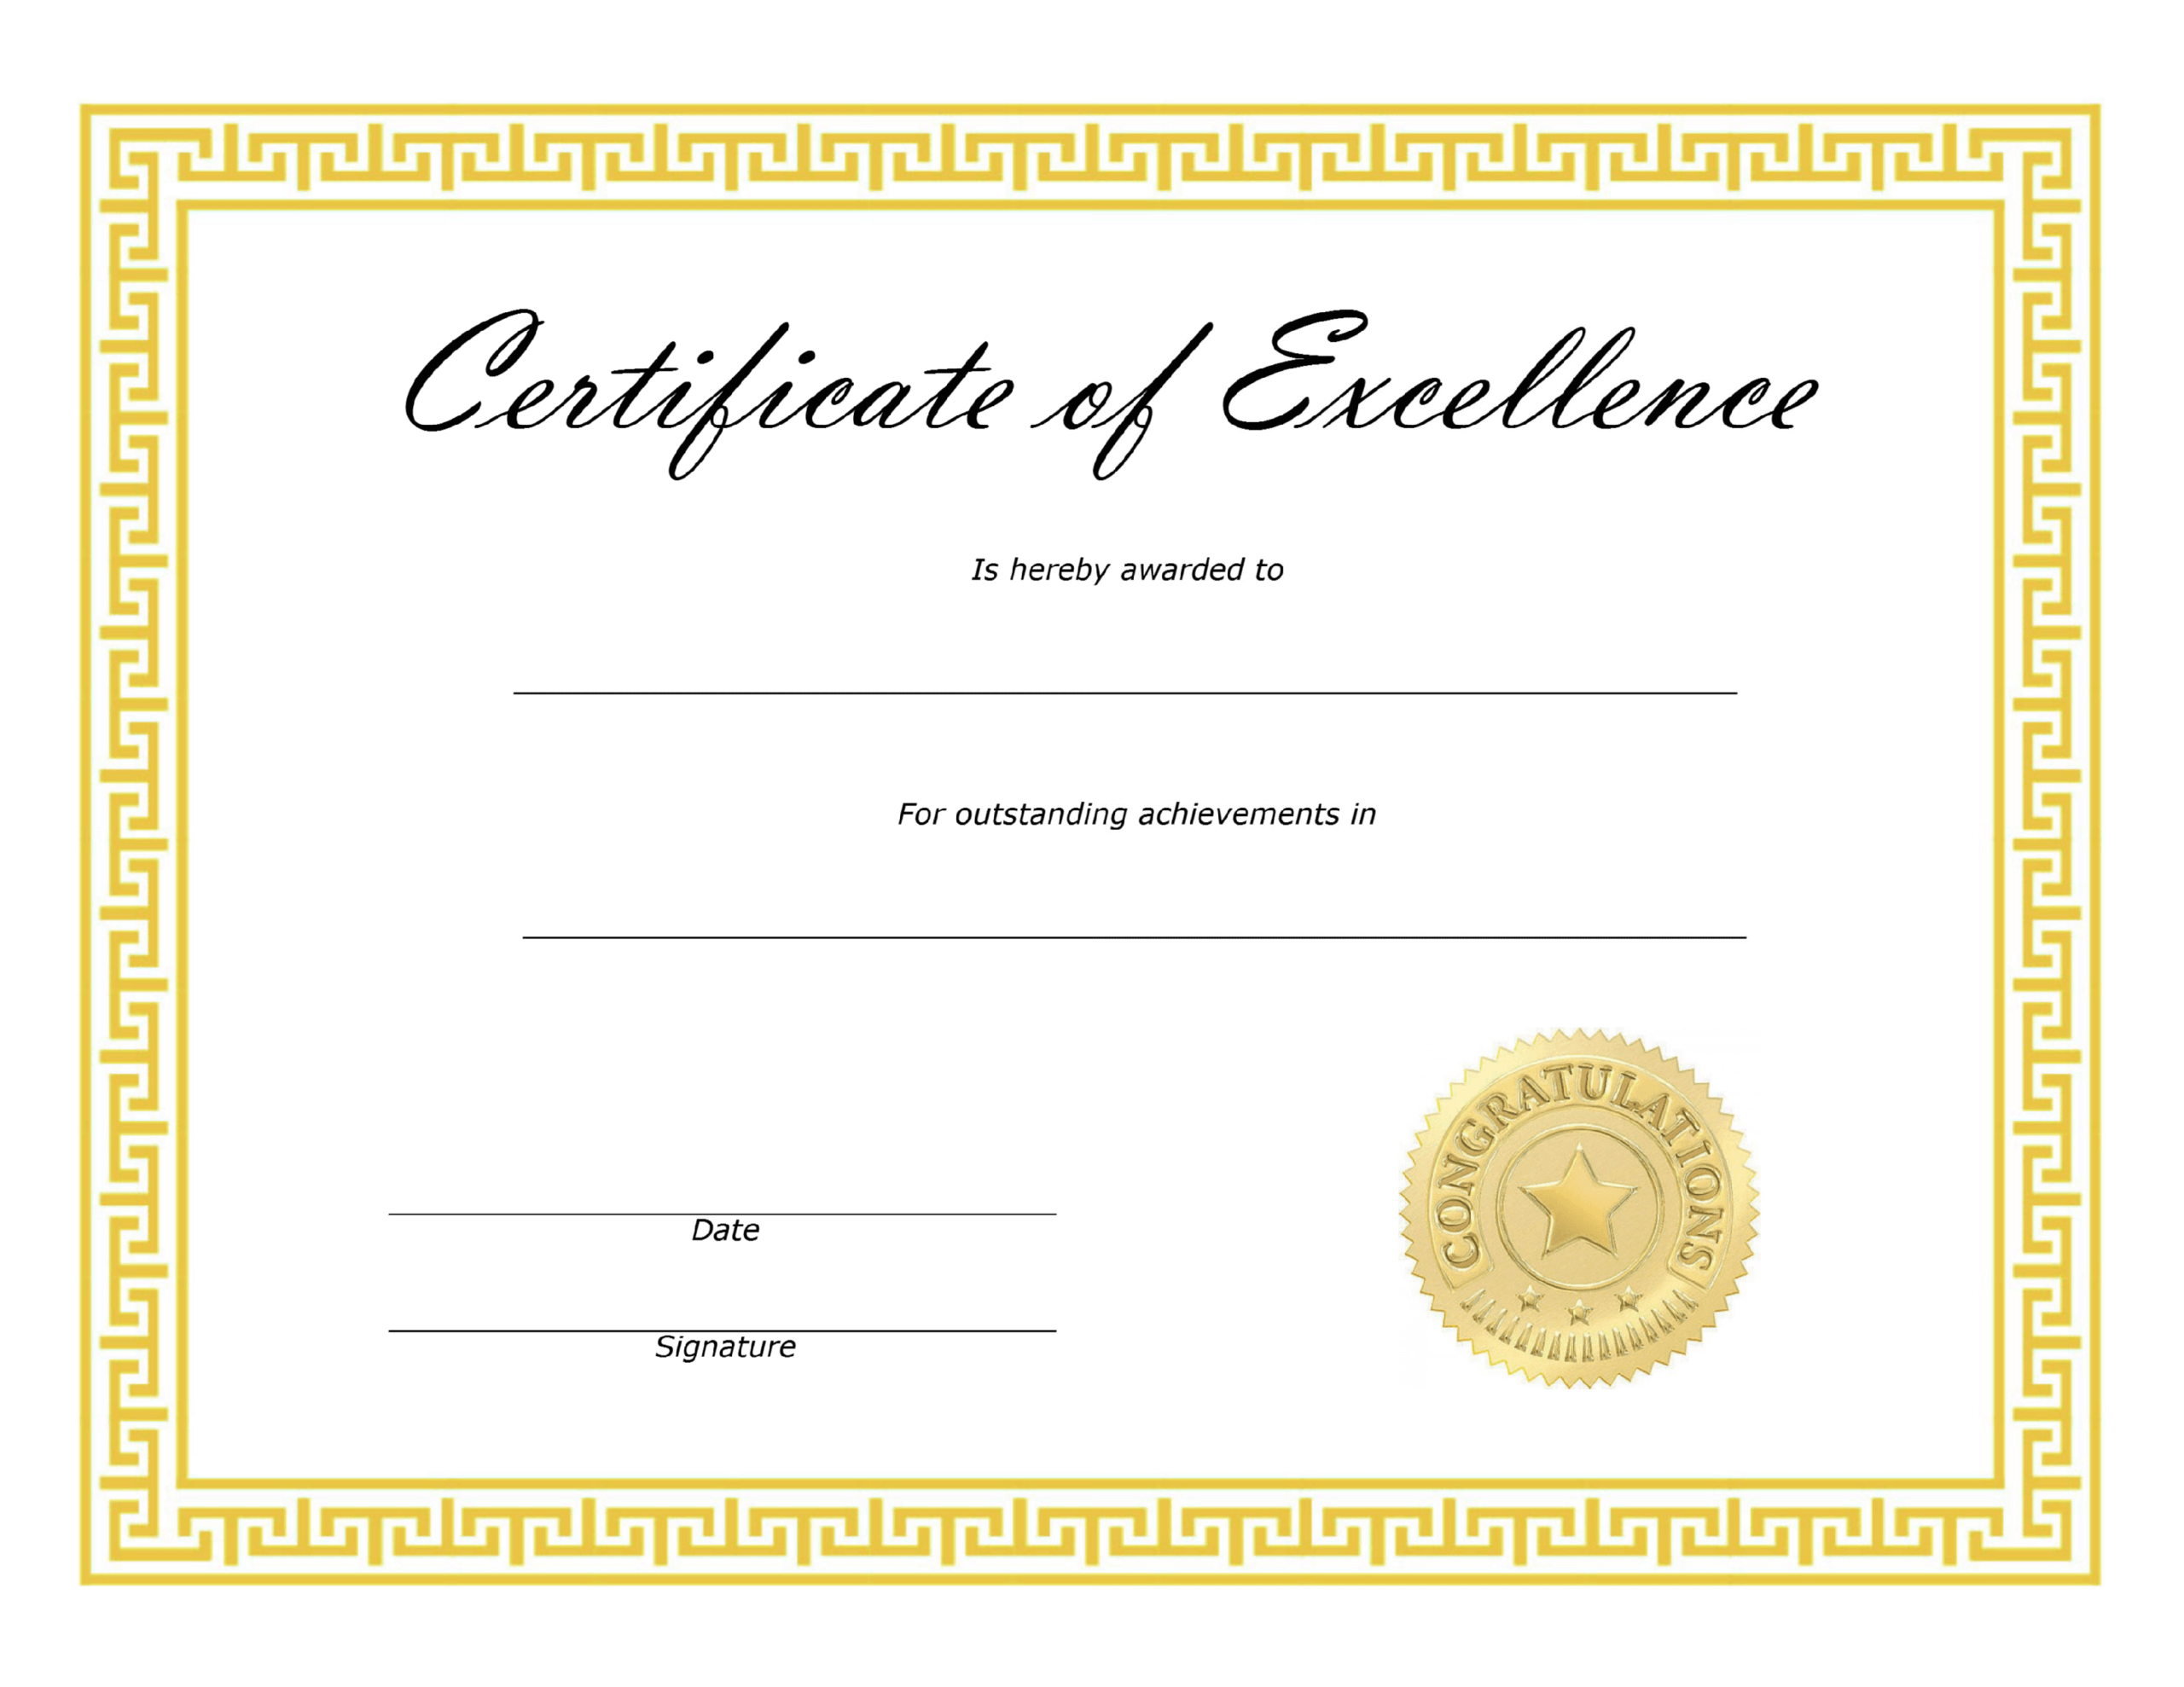 ❤️ Free Sample Certificate Of Excellence Templates❤️ In Award Of Excellence Certificate Template